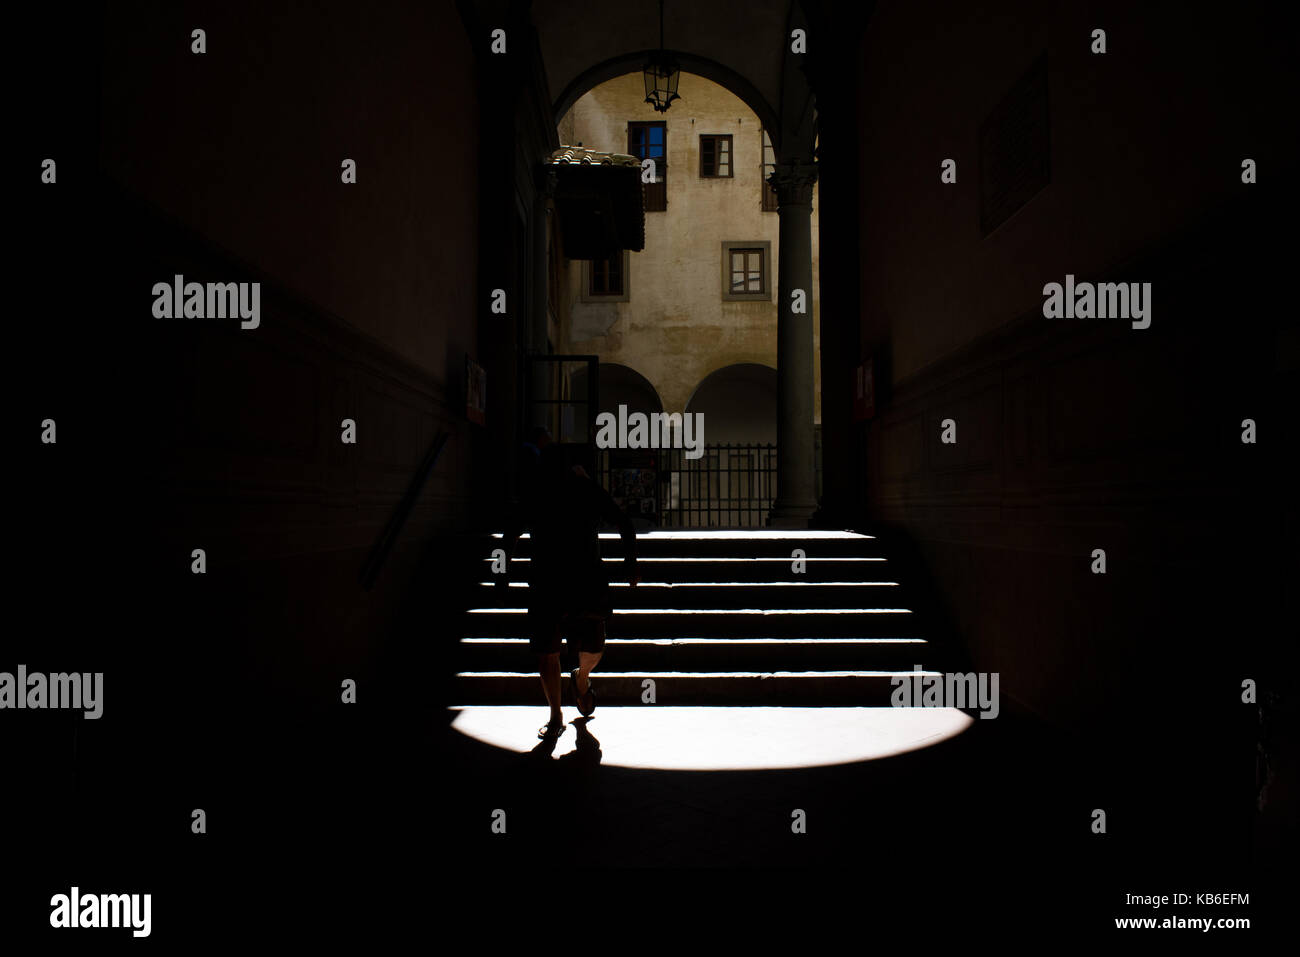 A man goes down the stairs backlit in the Badia Fiorentina in Florence, Italy Stock Photo